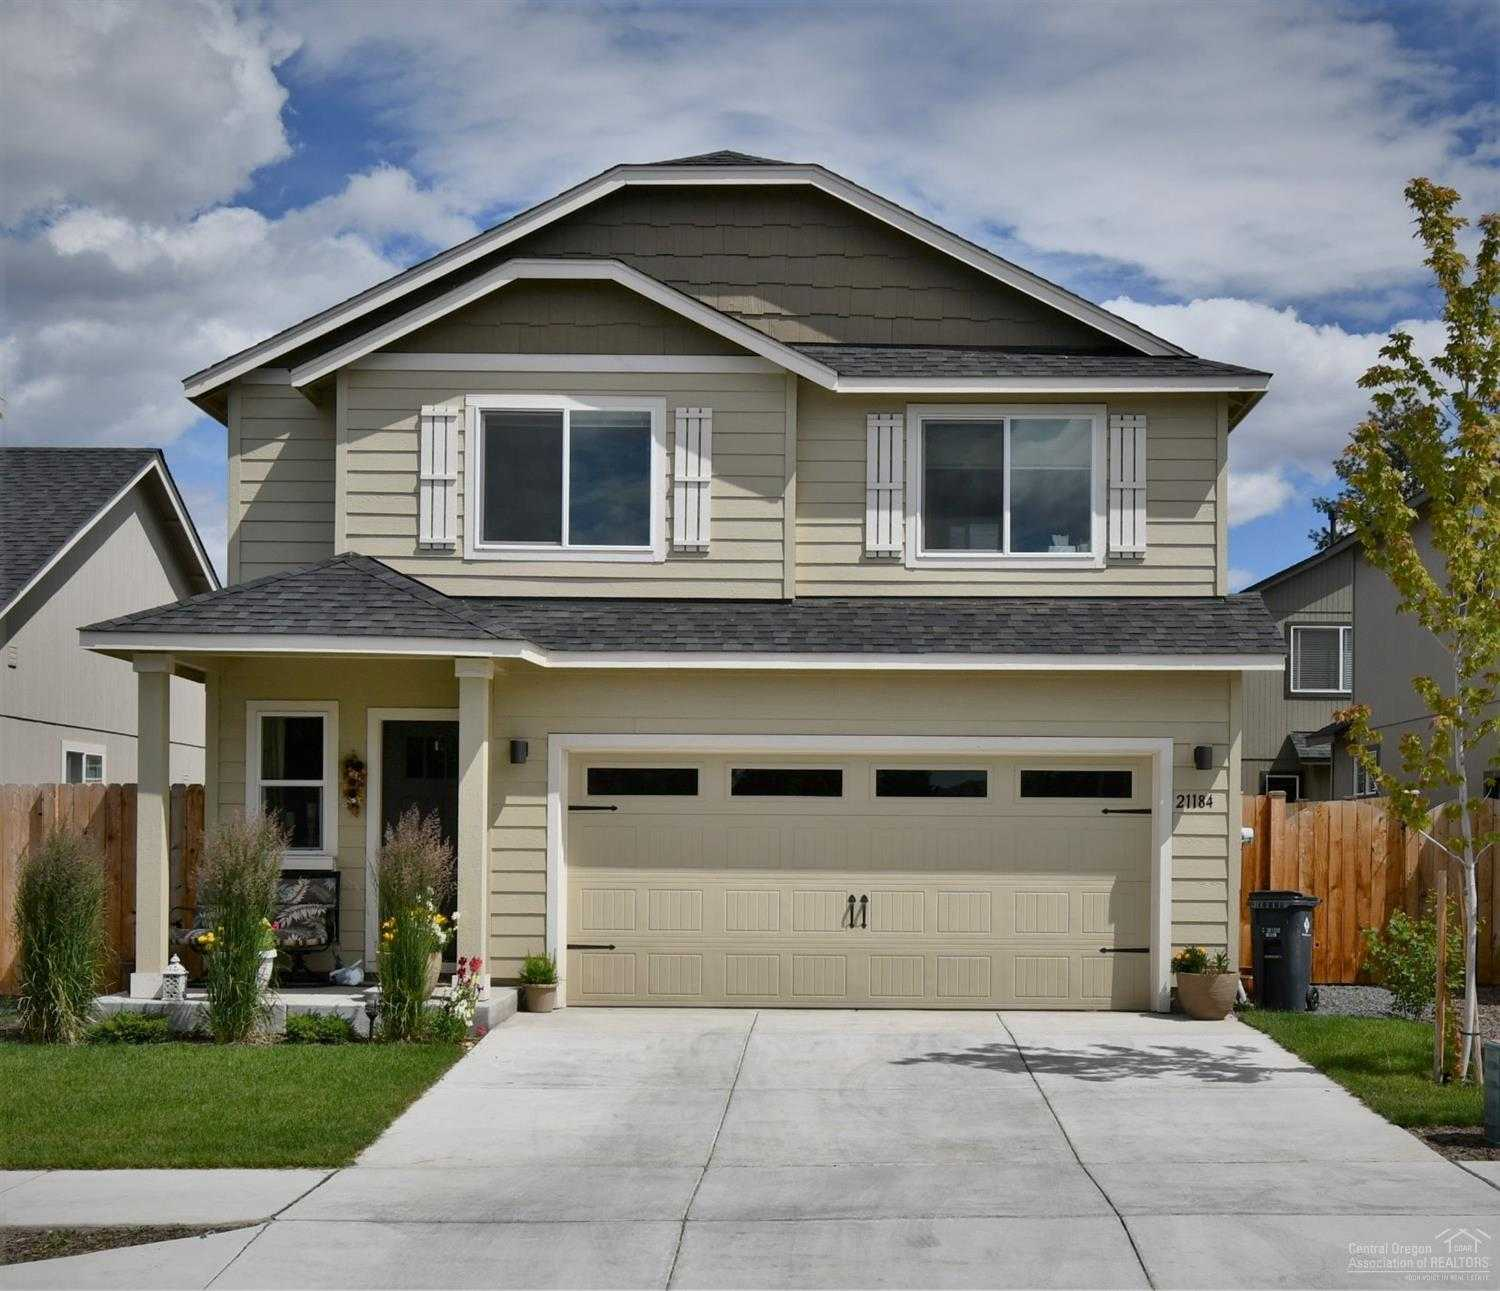 $339,900 - 3Br/3Ba -  for Sale in Bend